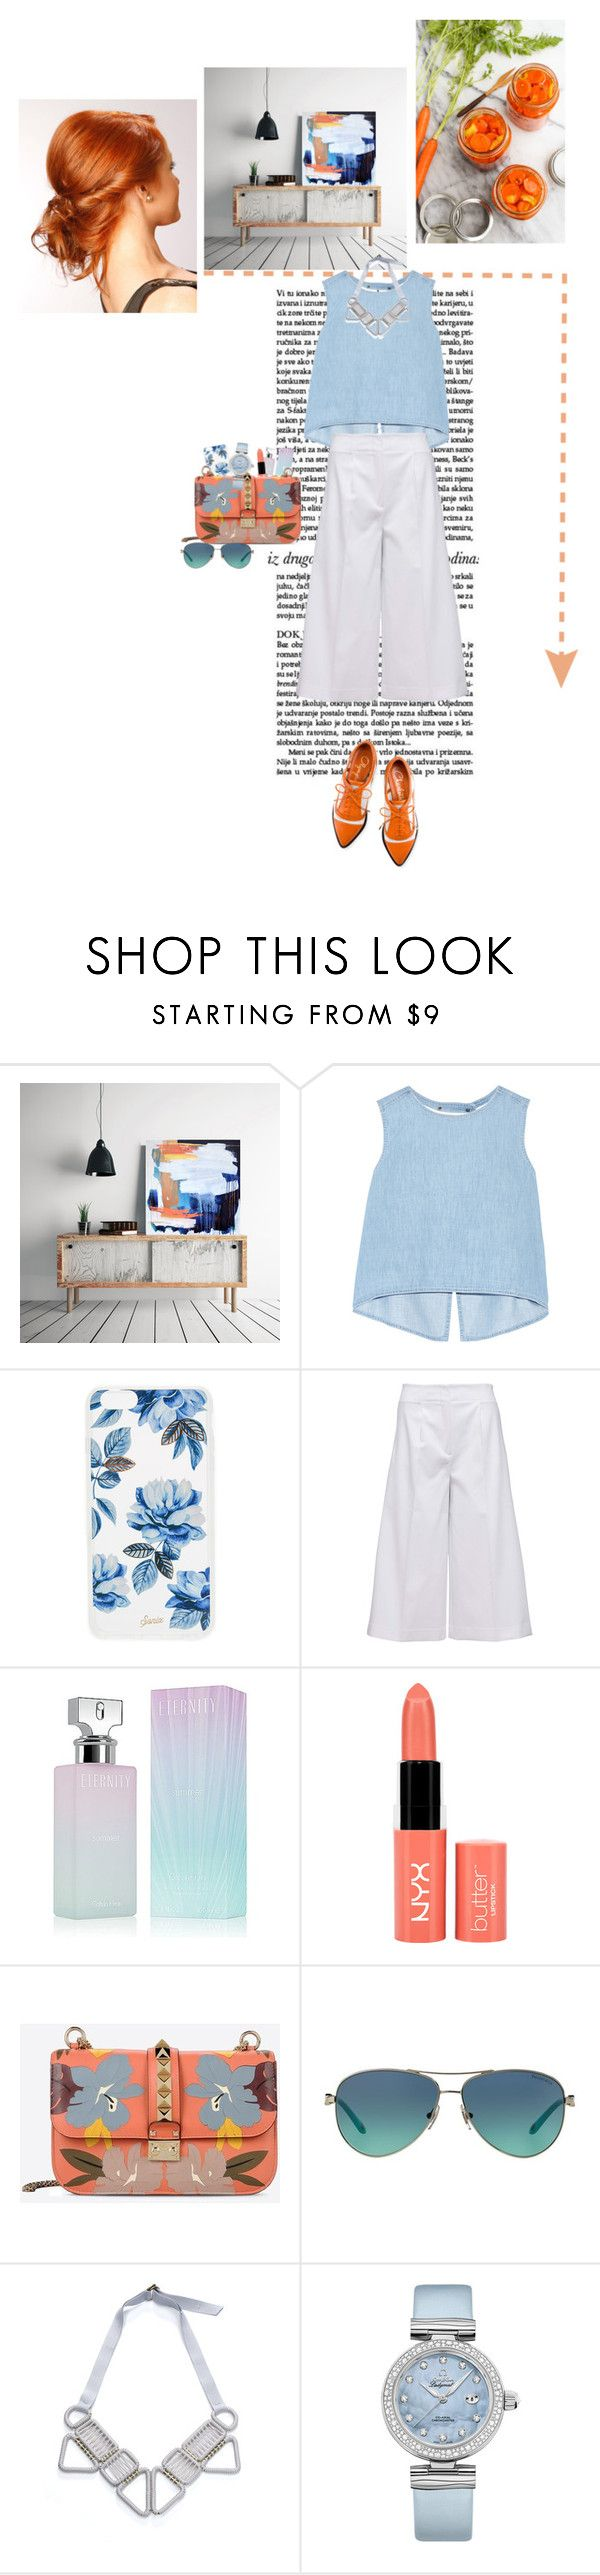 """""""№47 2016"""" by akatonbo ❤ liked on Polyvore featuring Charlotte Olympia, Steve J & Yoni P, Sonix, Tommy Hilfiger, Calvin Klein, NYX, Valentino, Tiffany & Co. and OMEGA"""